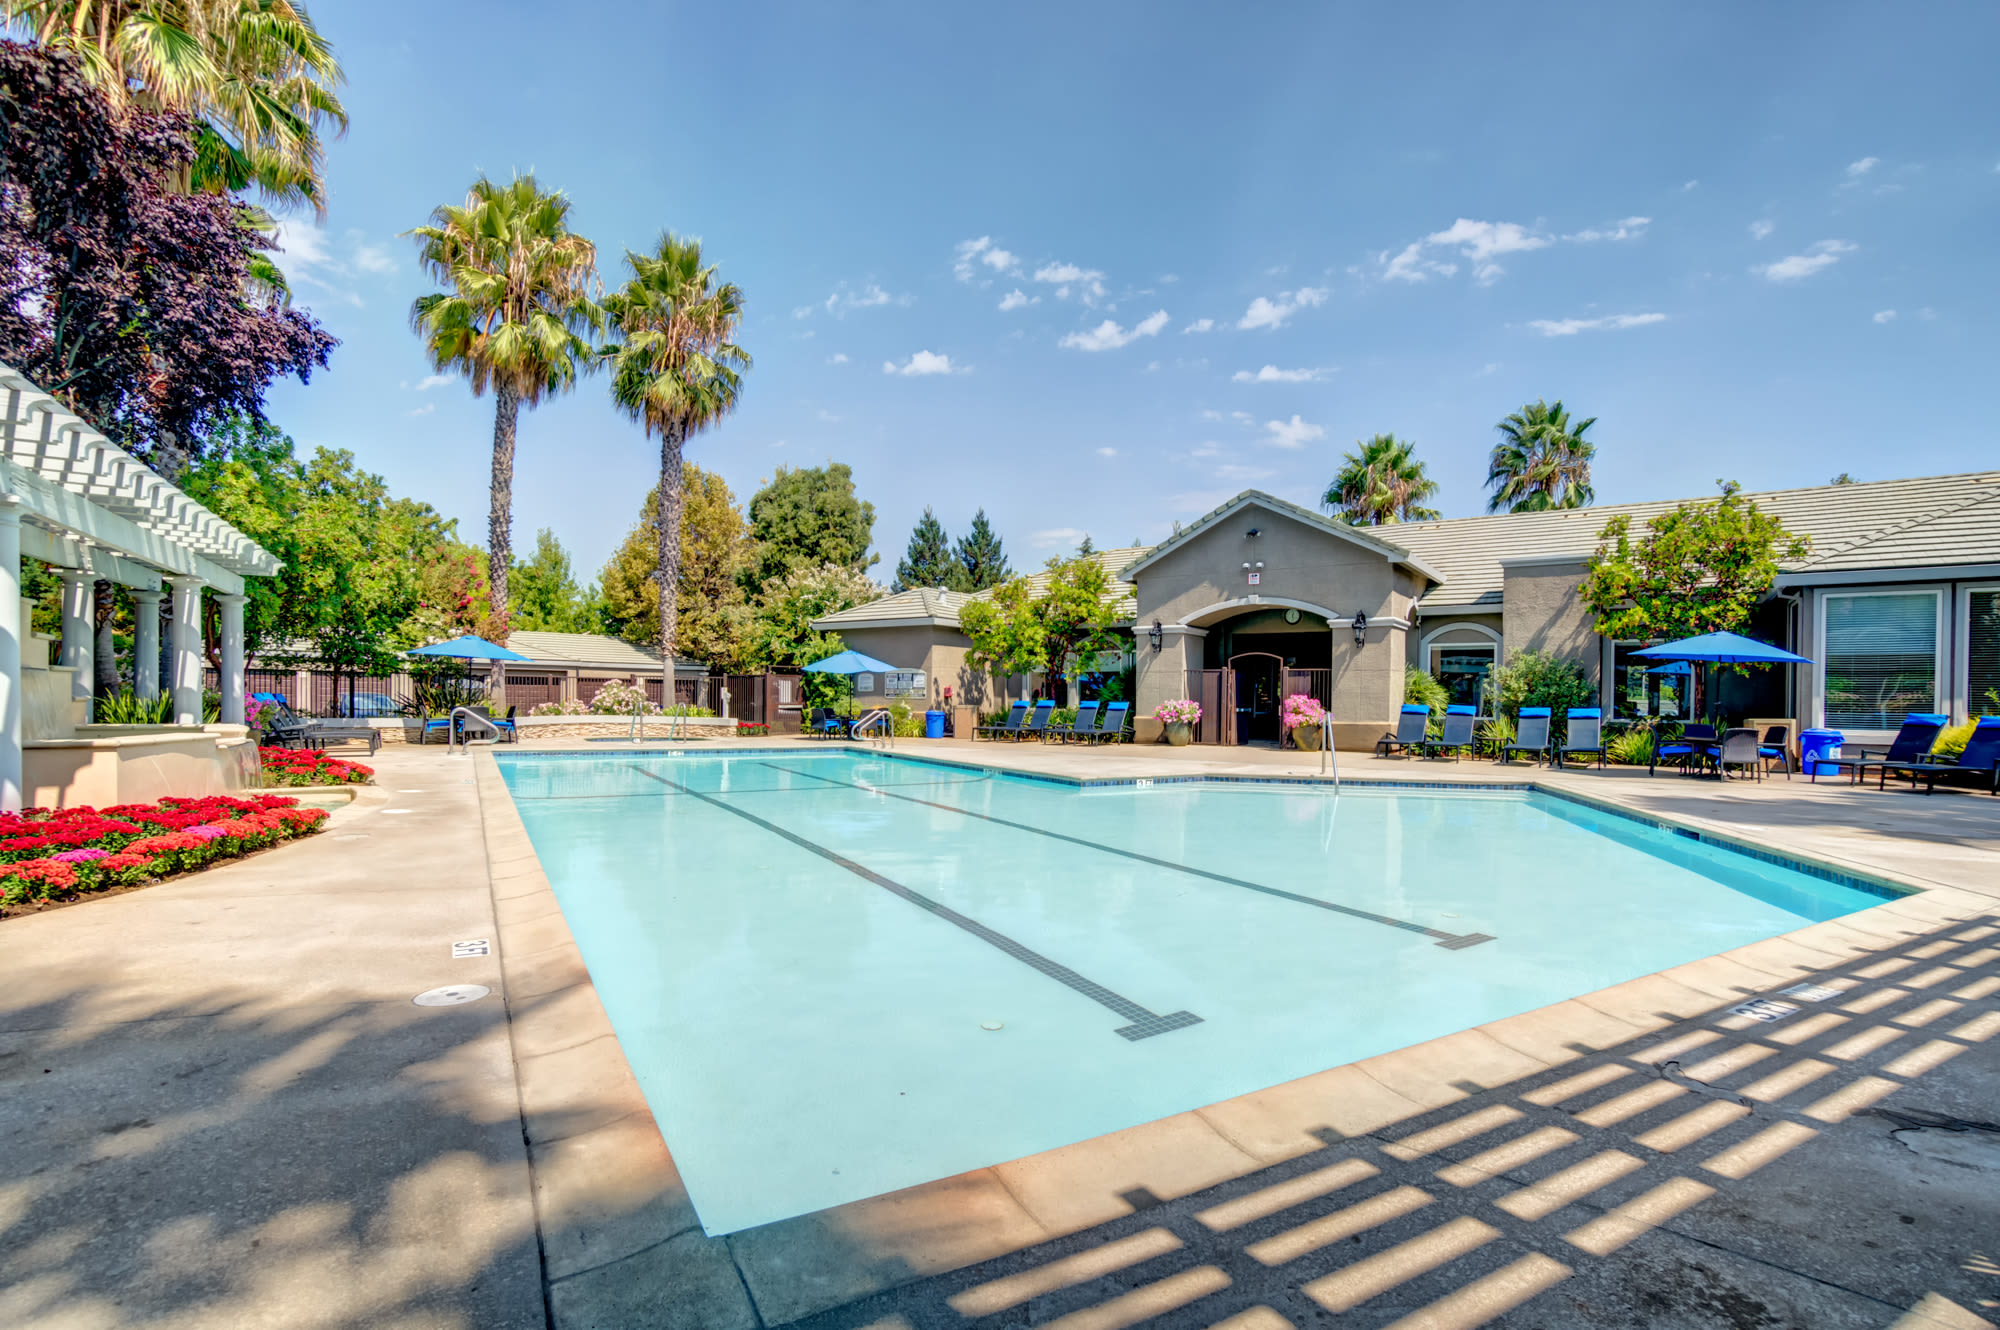 Pool view with palm trees and lounges in Napa, CA